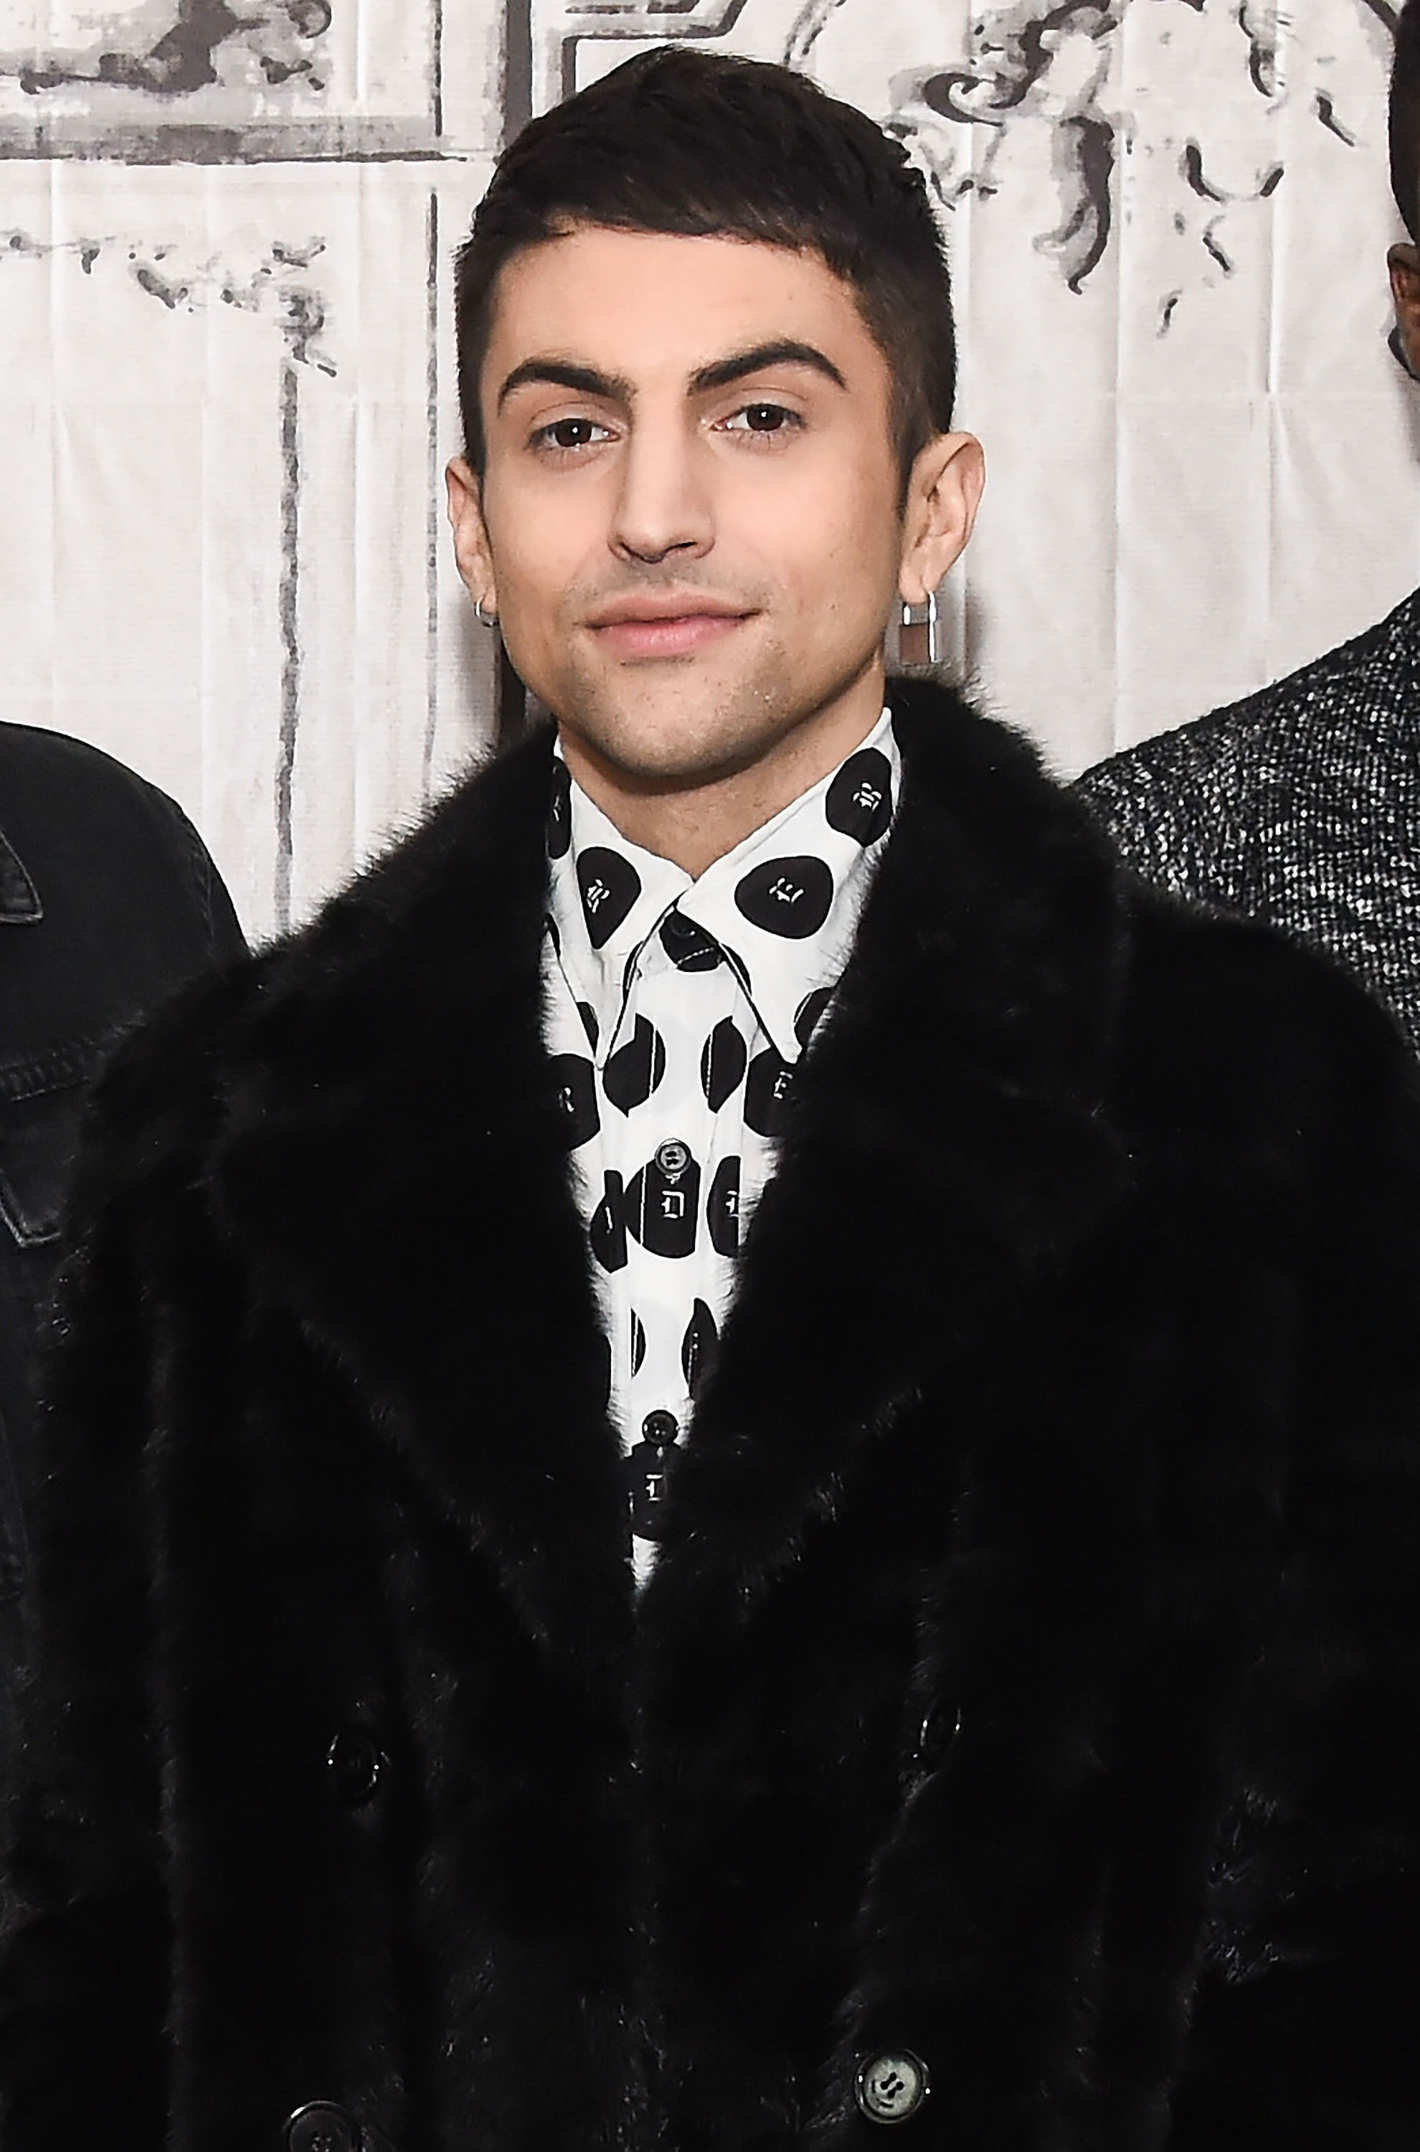 Pentatonix singer Mitch Grassi's Wiki: Weight Loss, Cancer